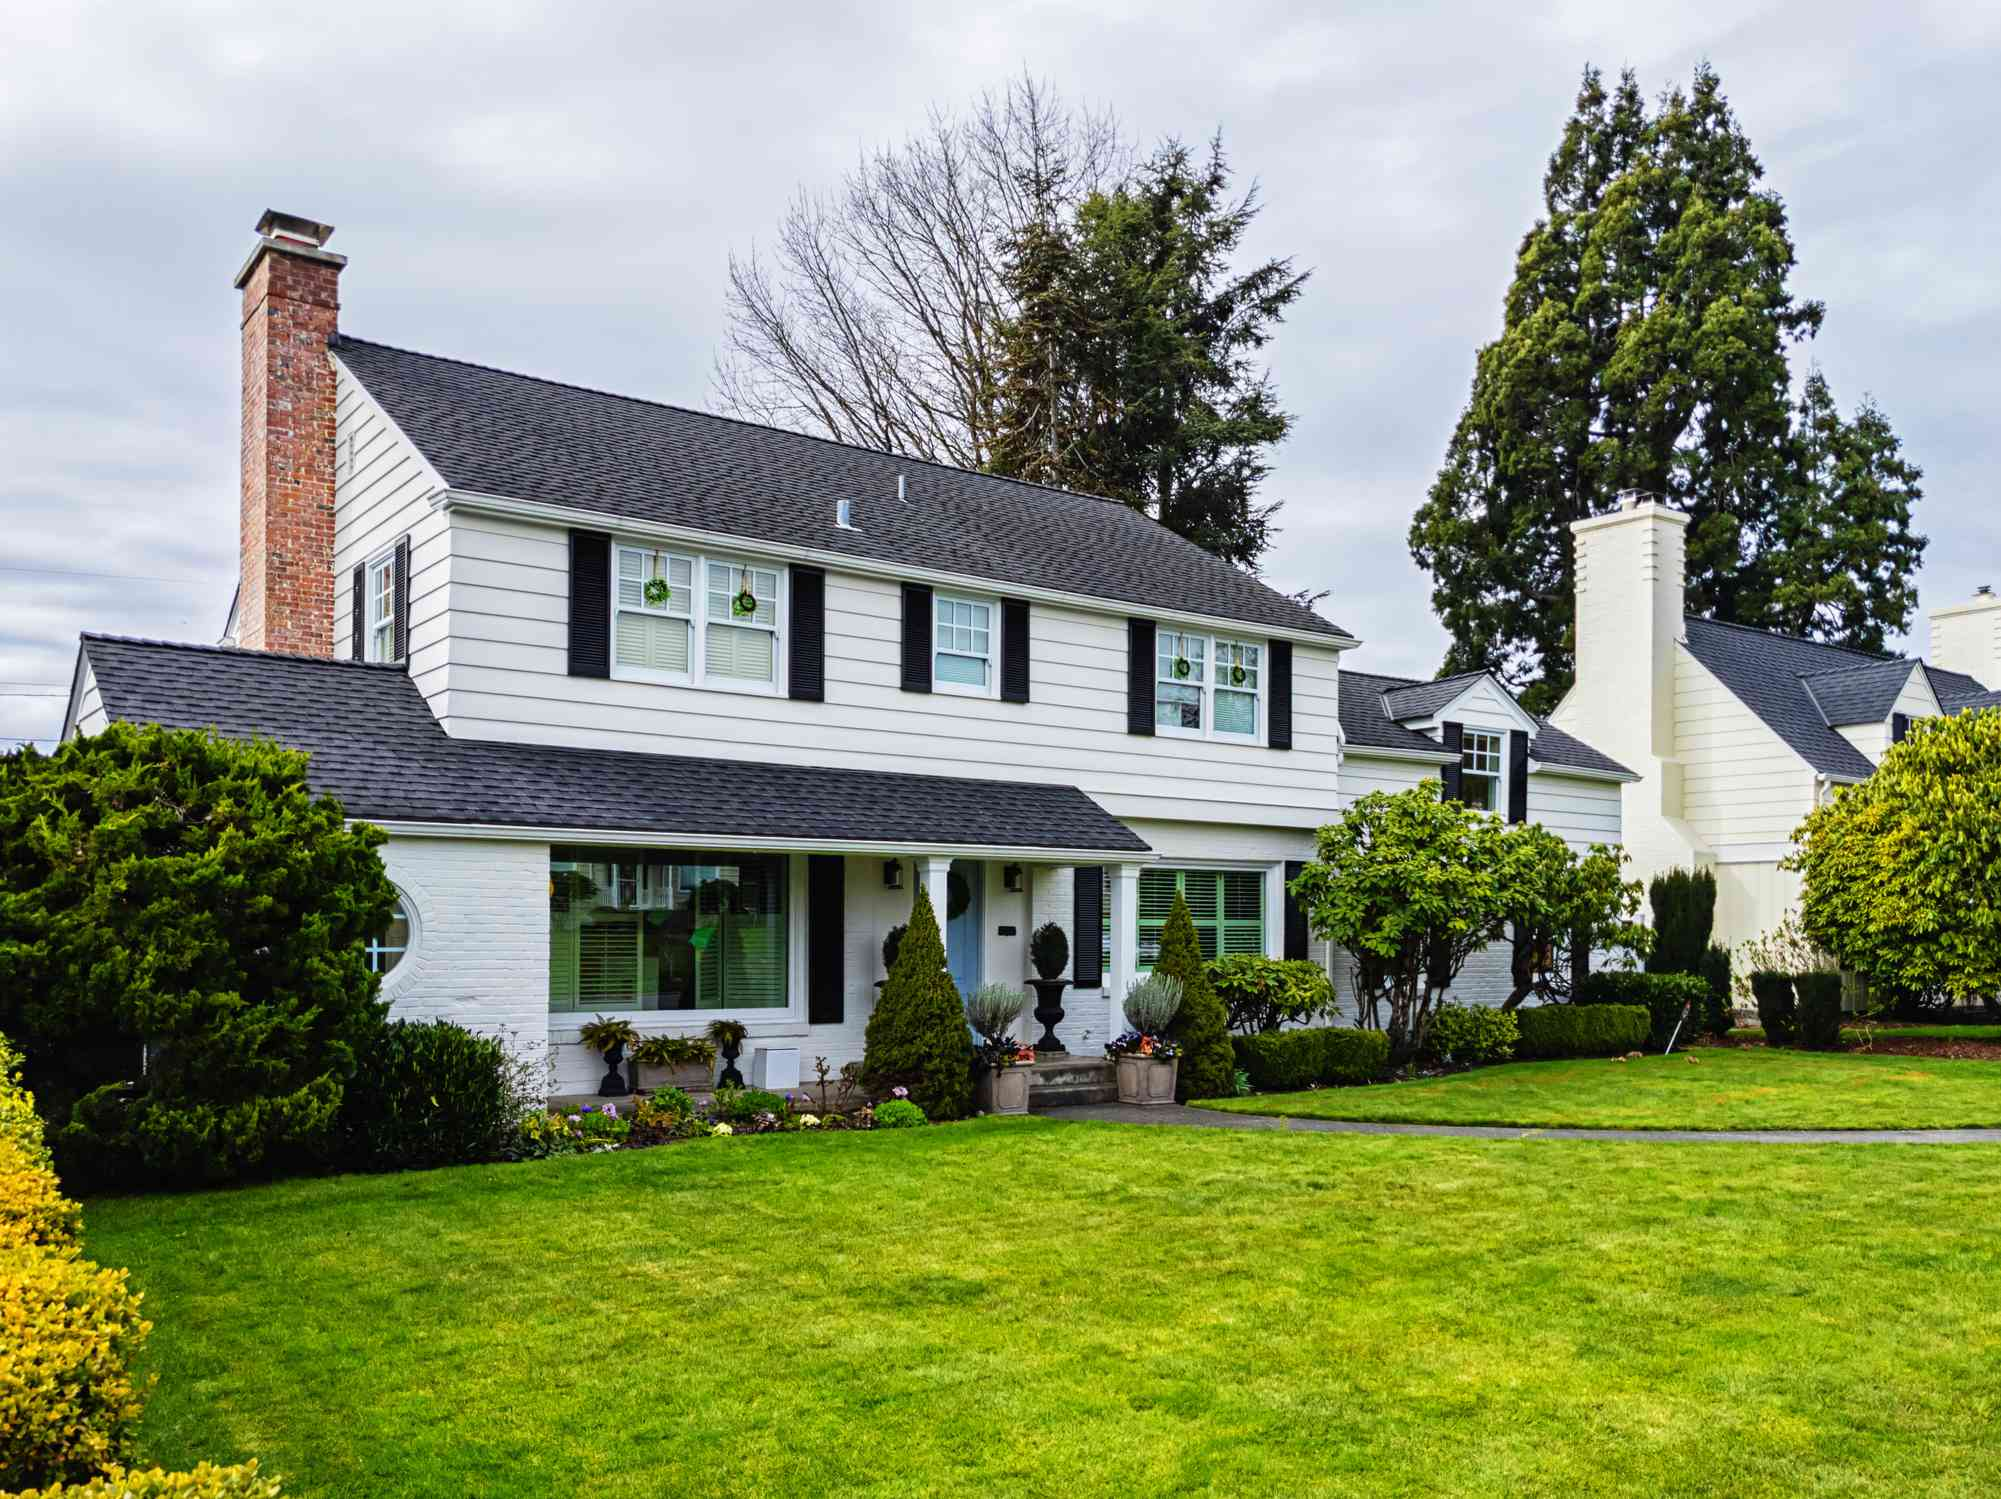 American Colonial-style home